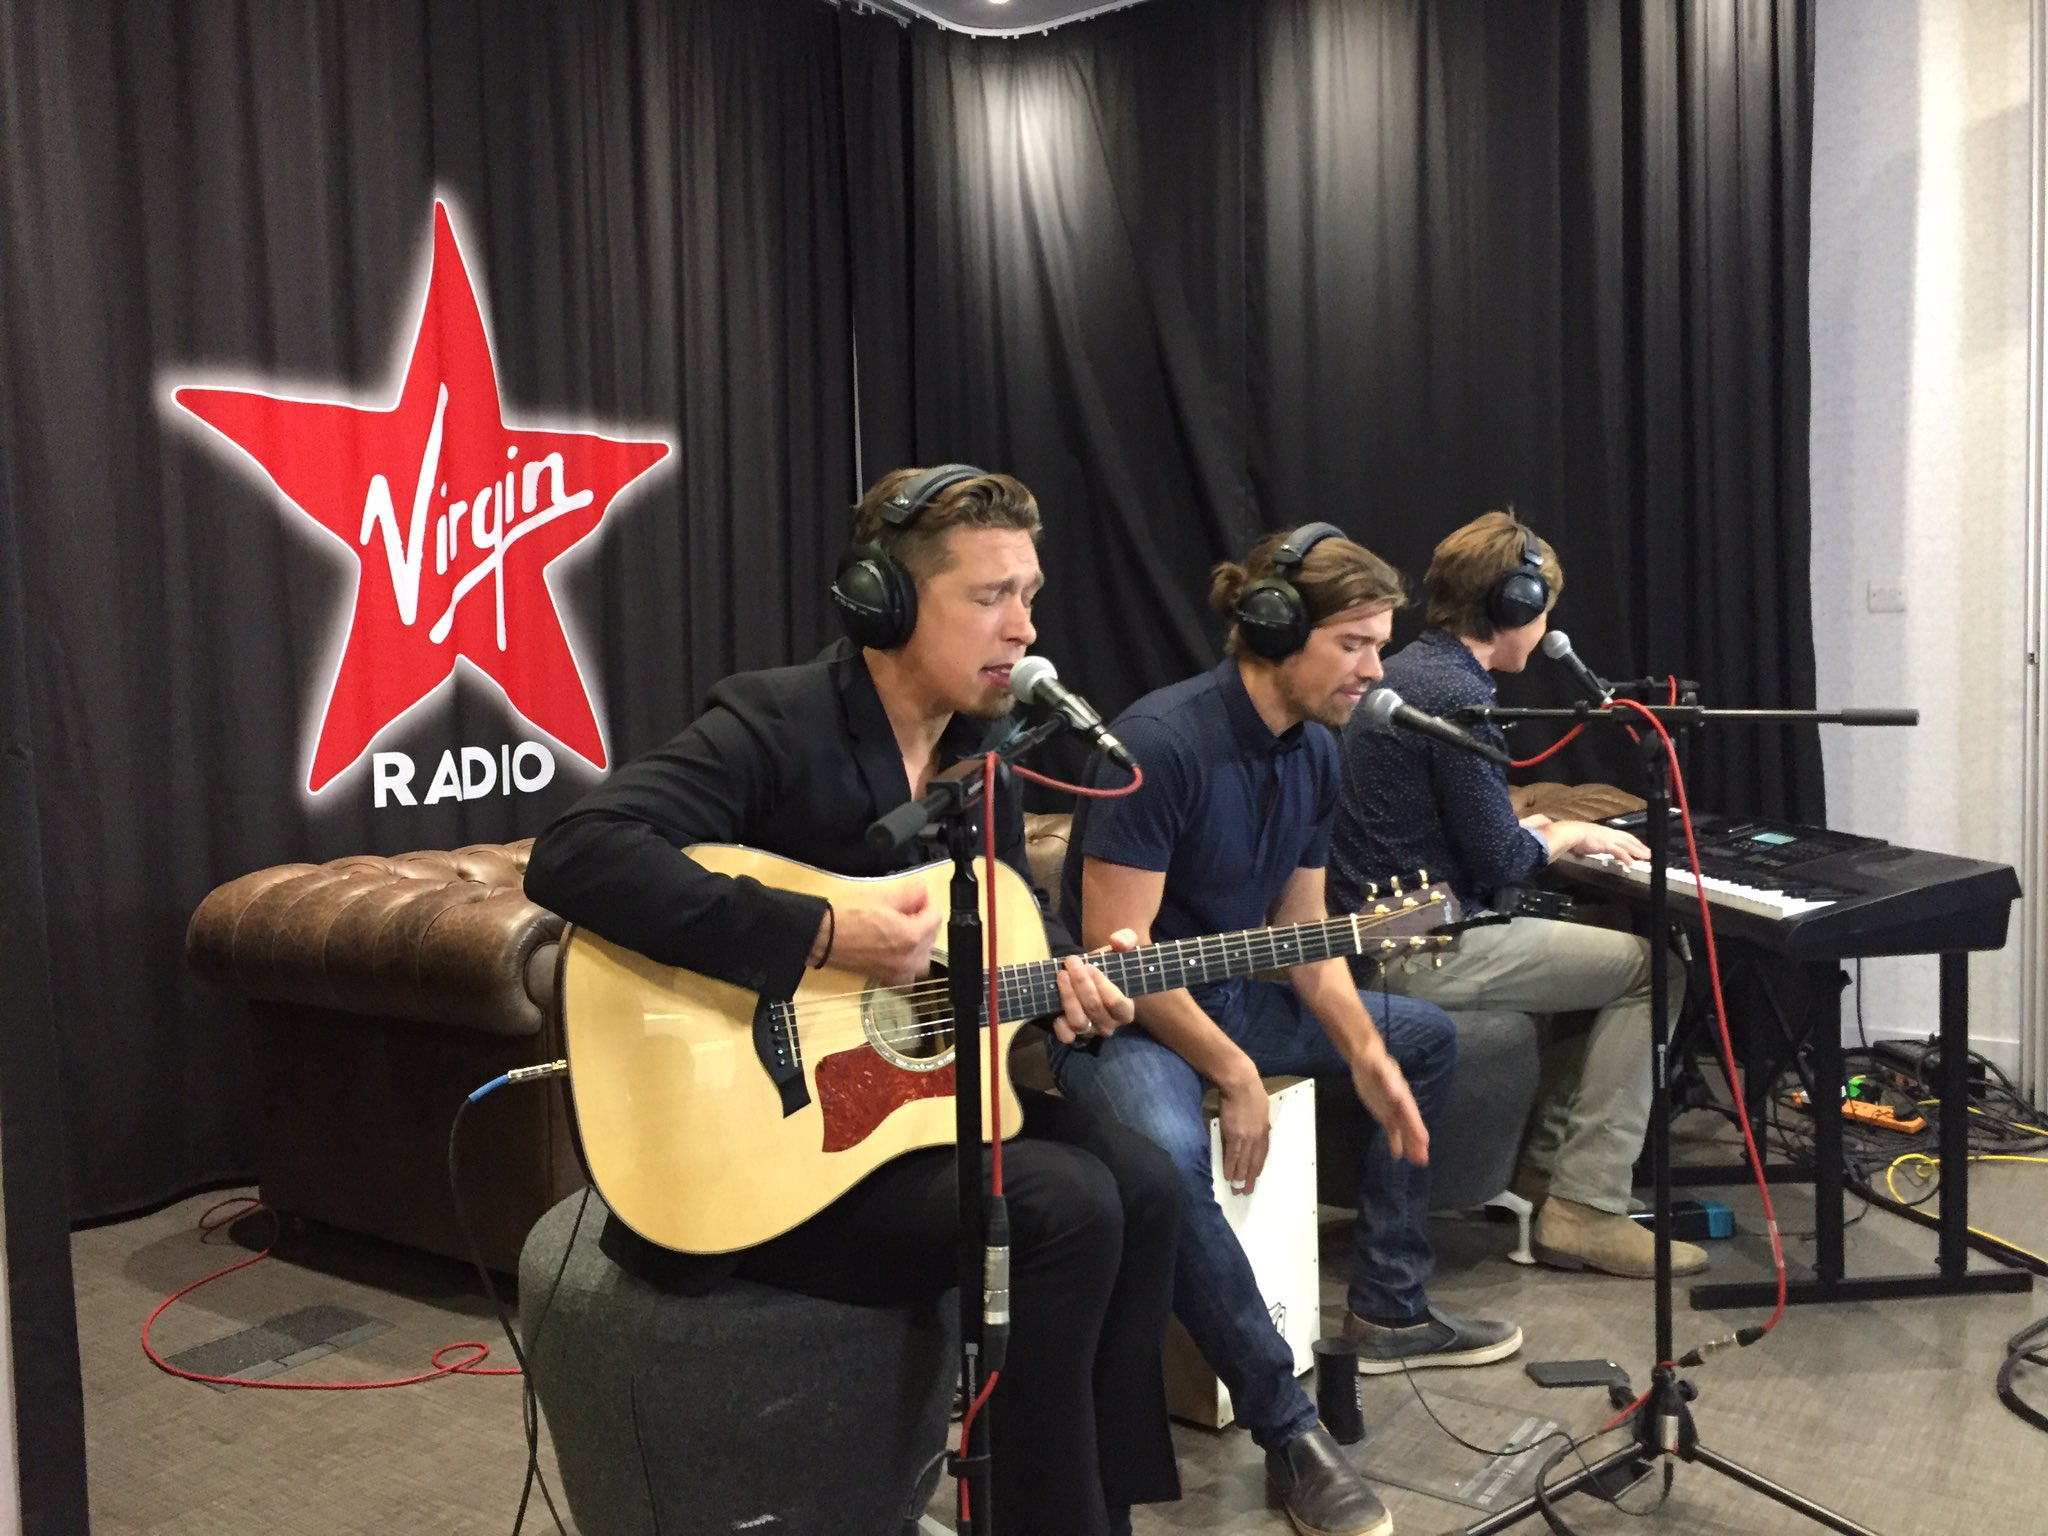 Getting ready to go live on @VirginRadioUK Tune in now! https://t.co/7MWZzyUzU8